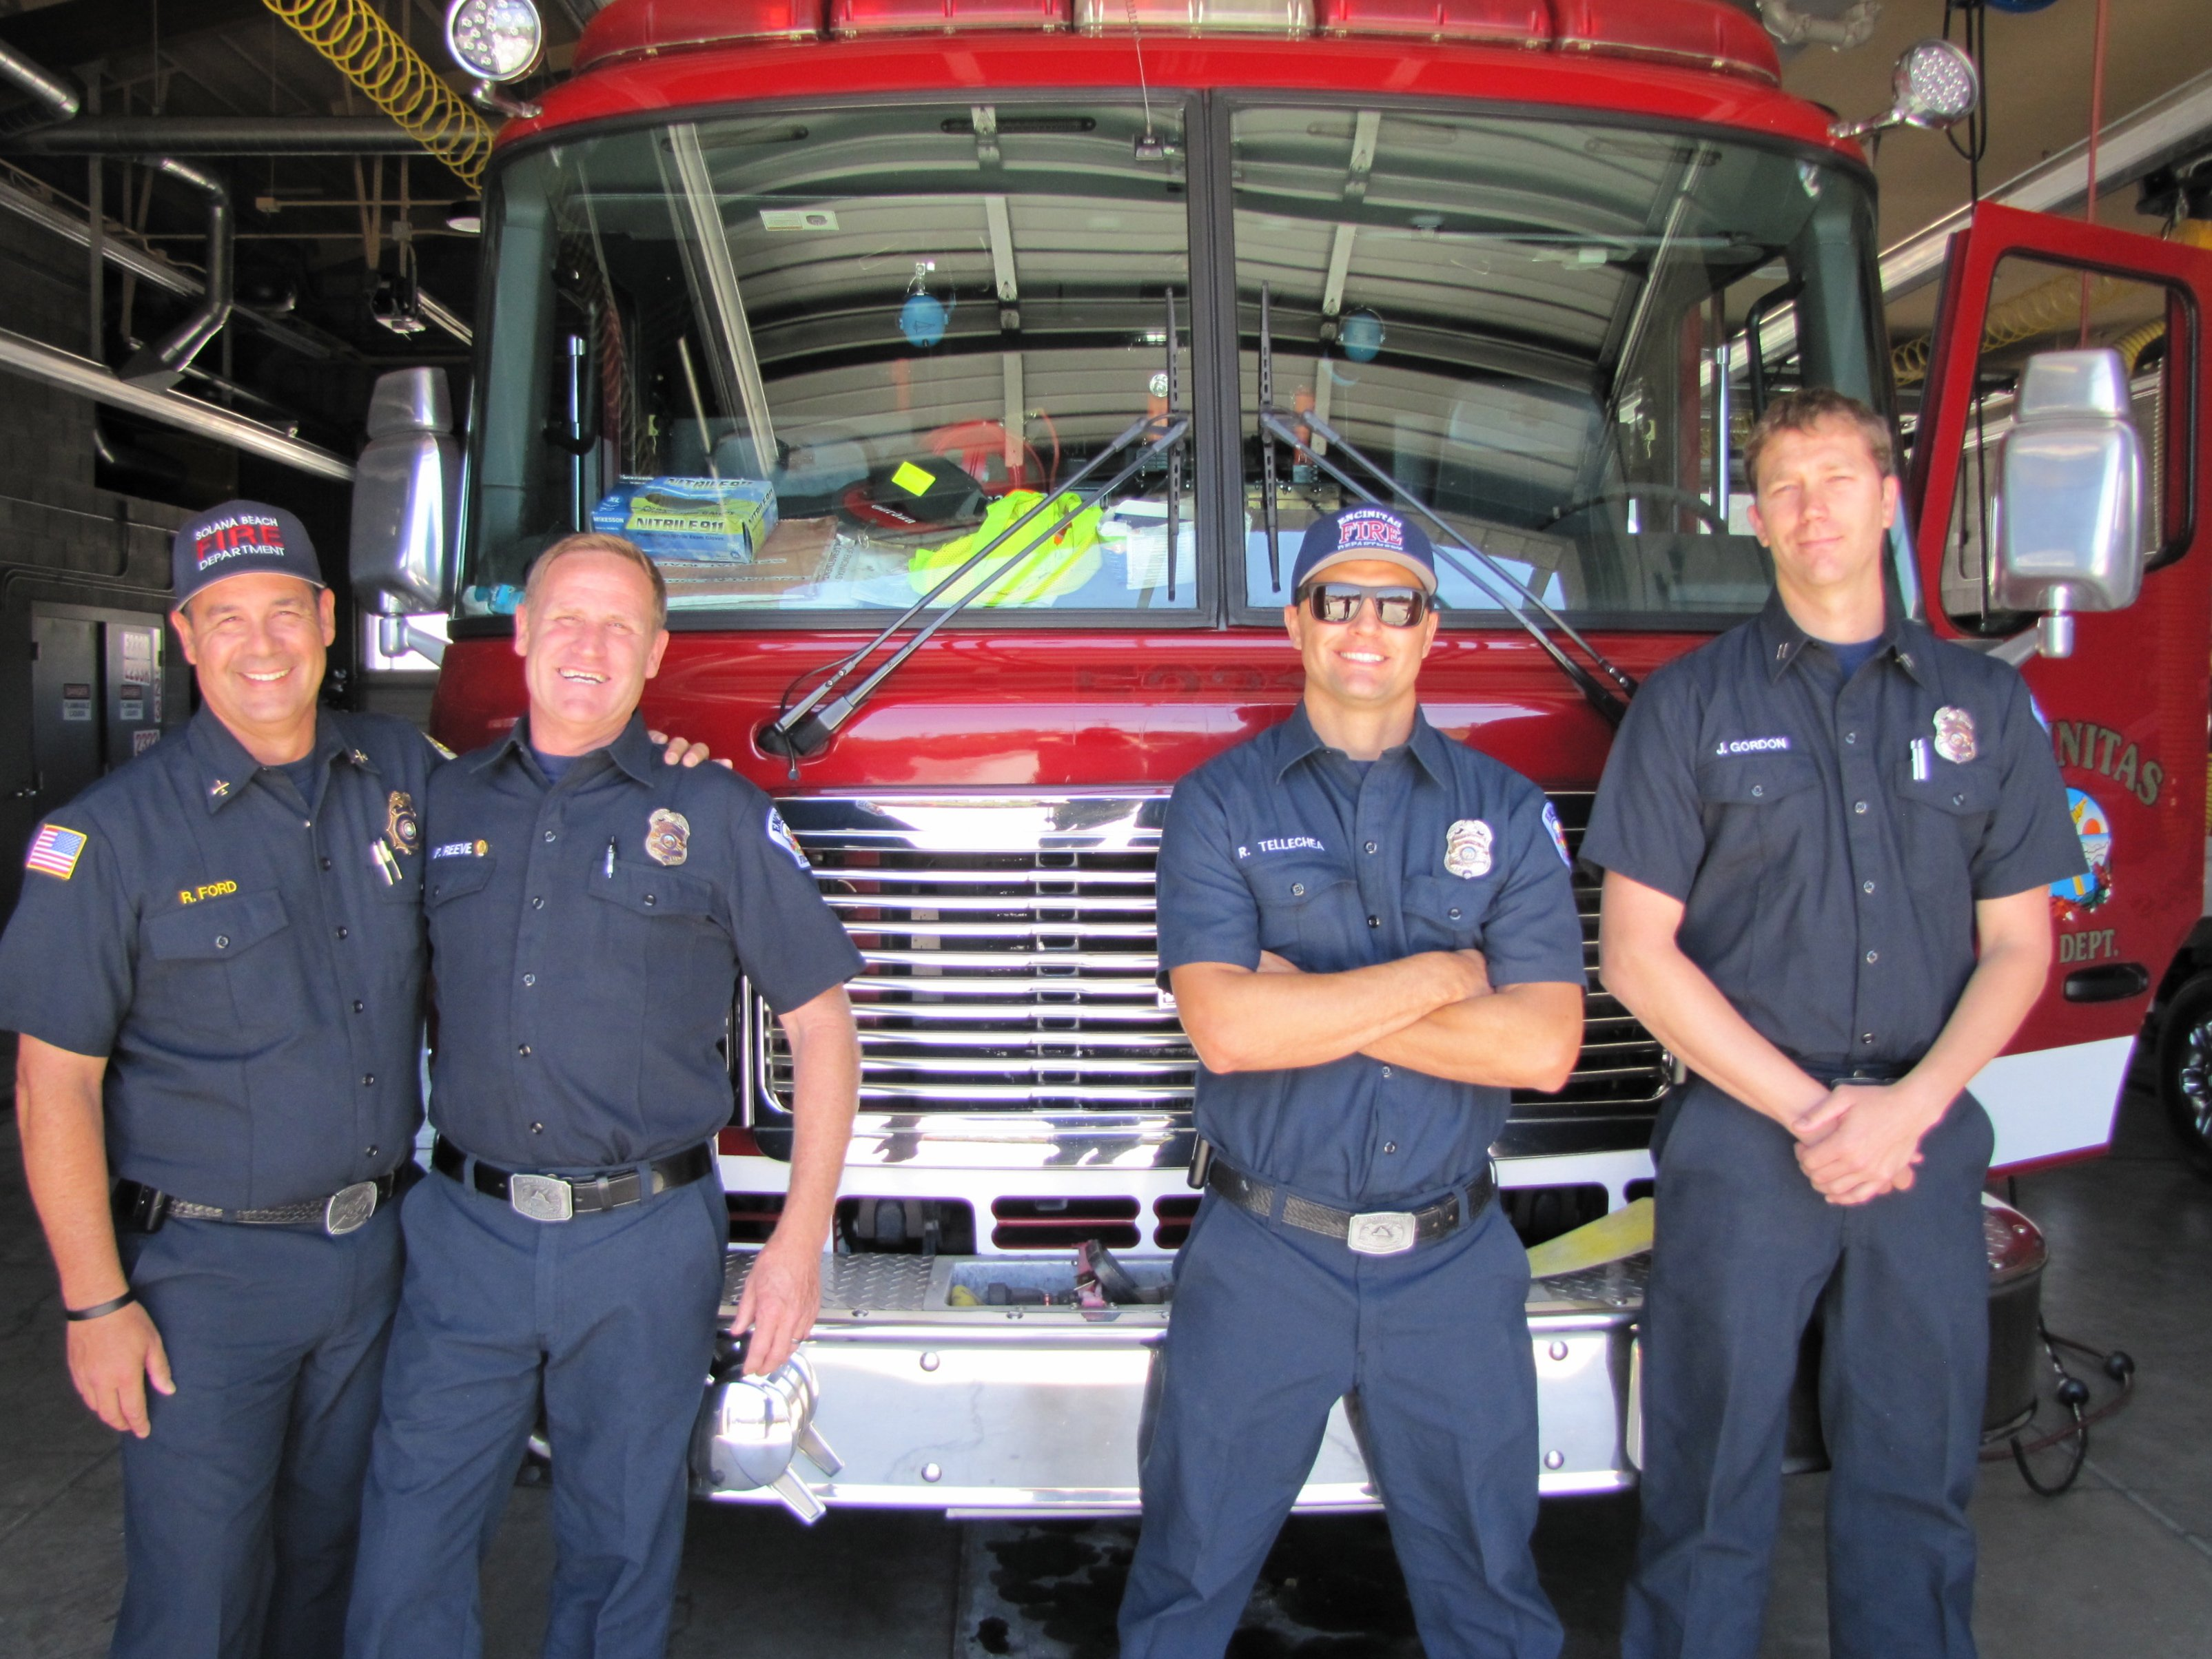 Local firefighters get ready for fire season